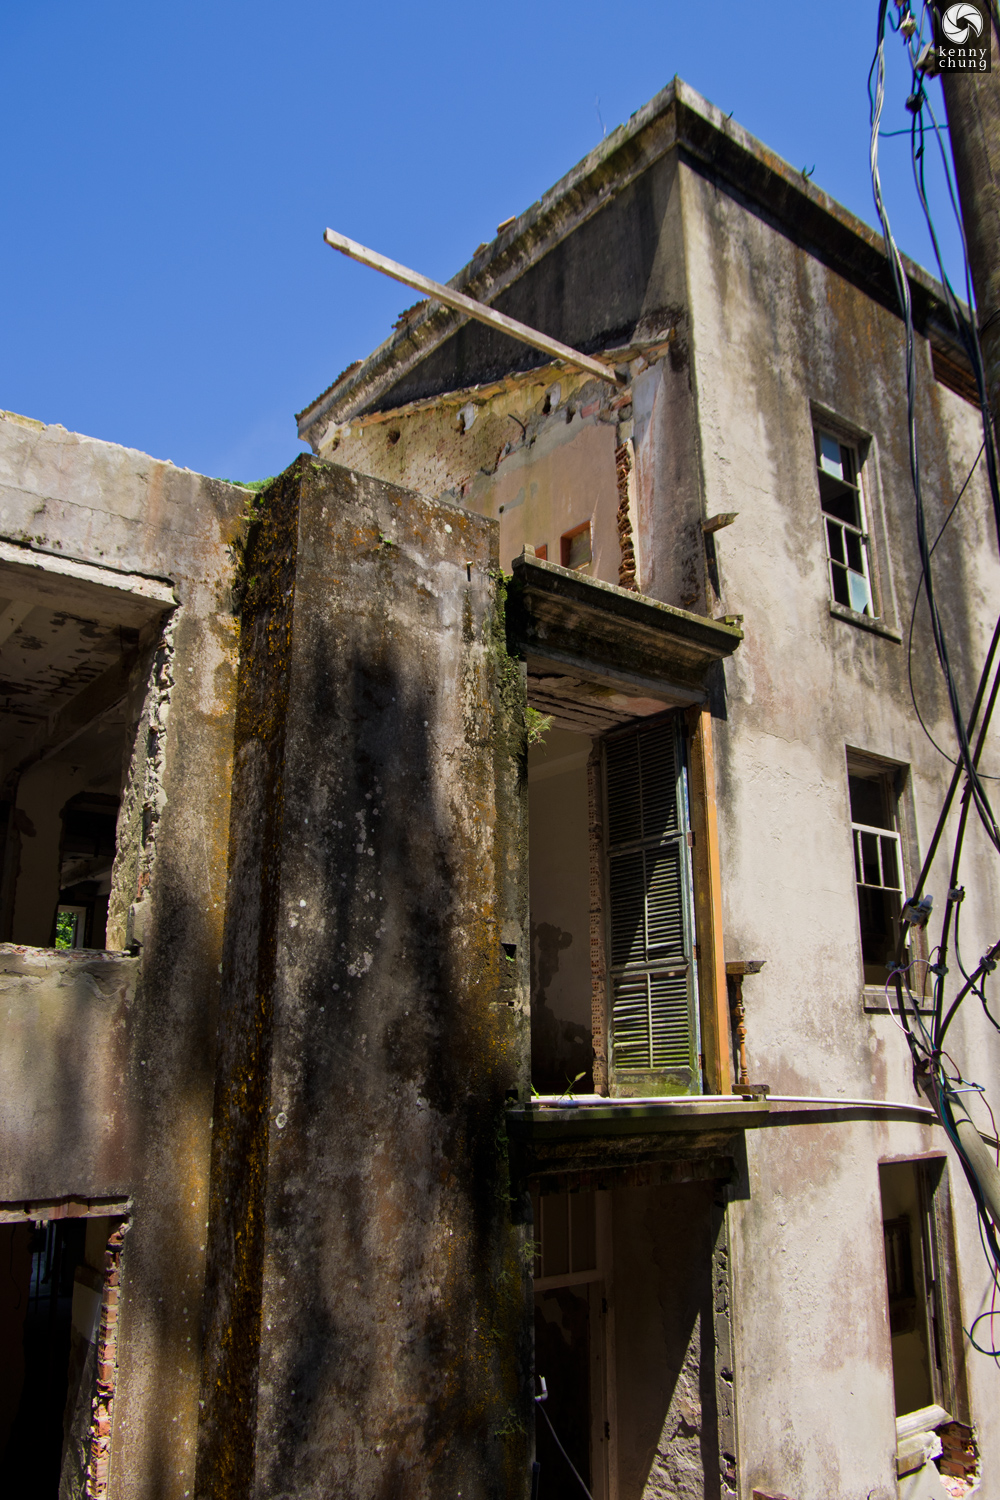 Abandoned building near the Corcovado tram